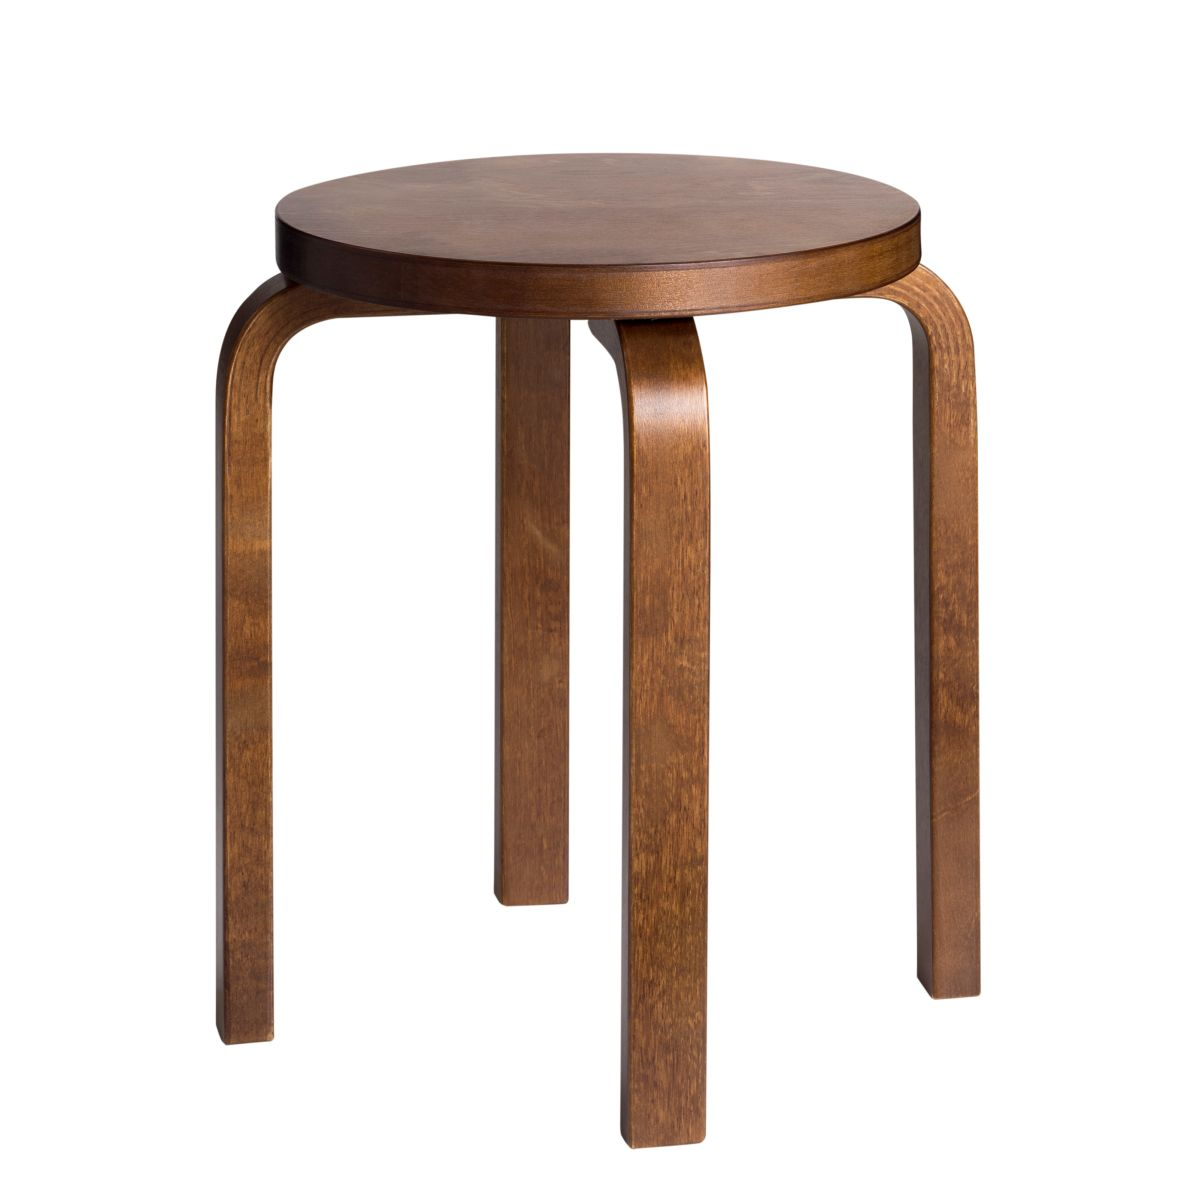 Stool E60 walnut stain